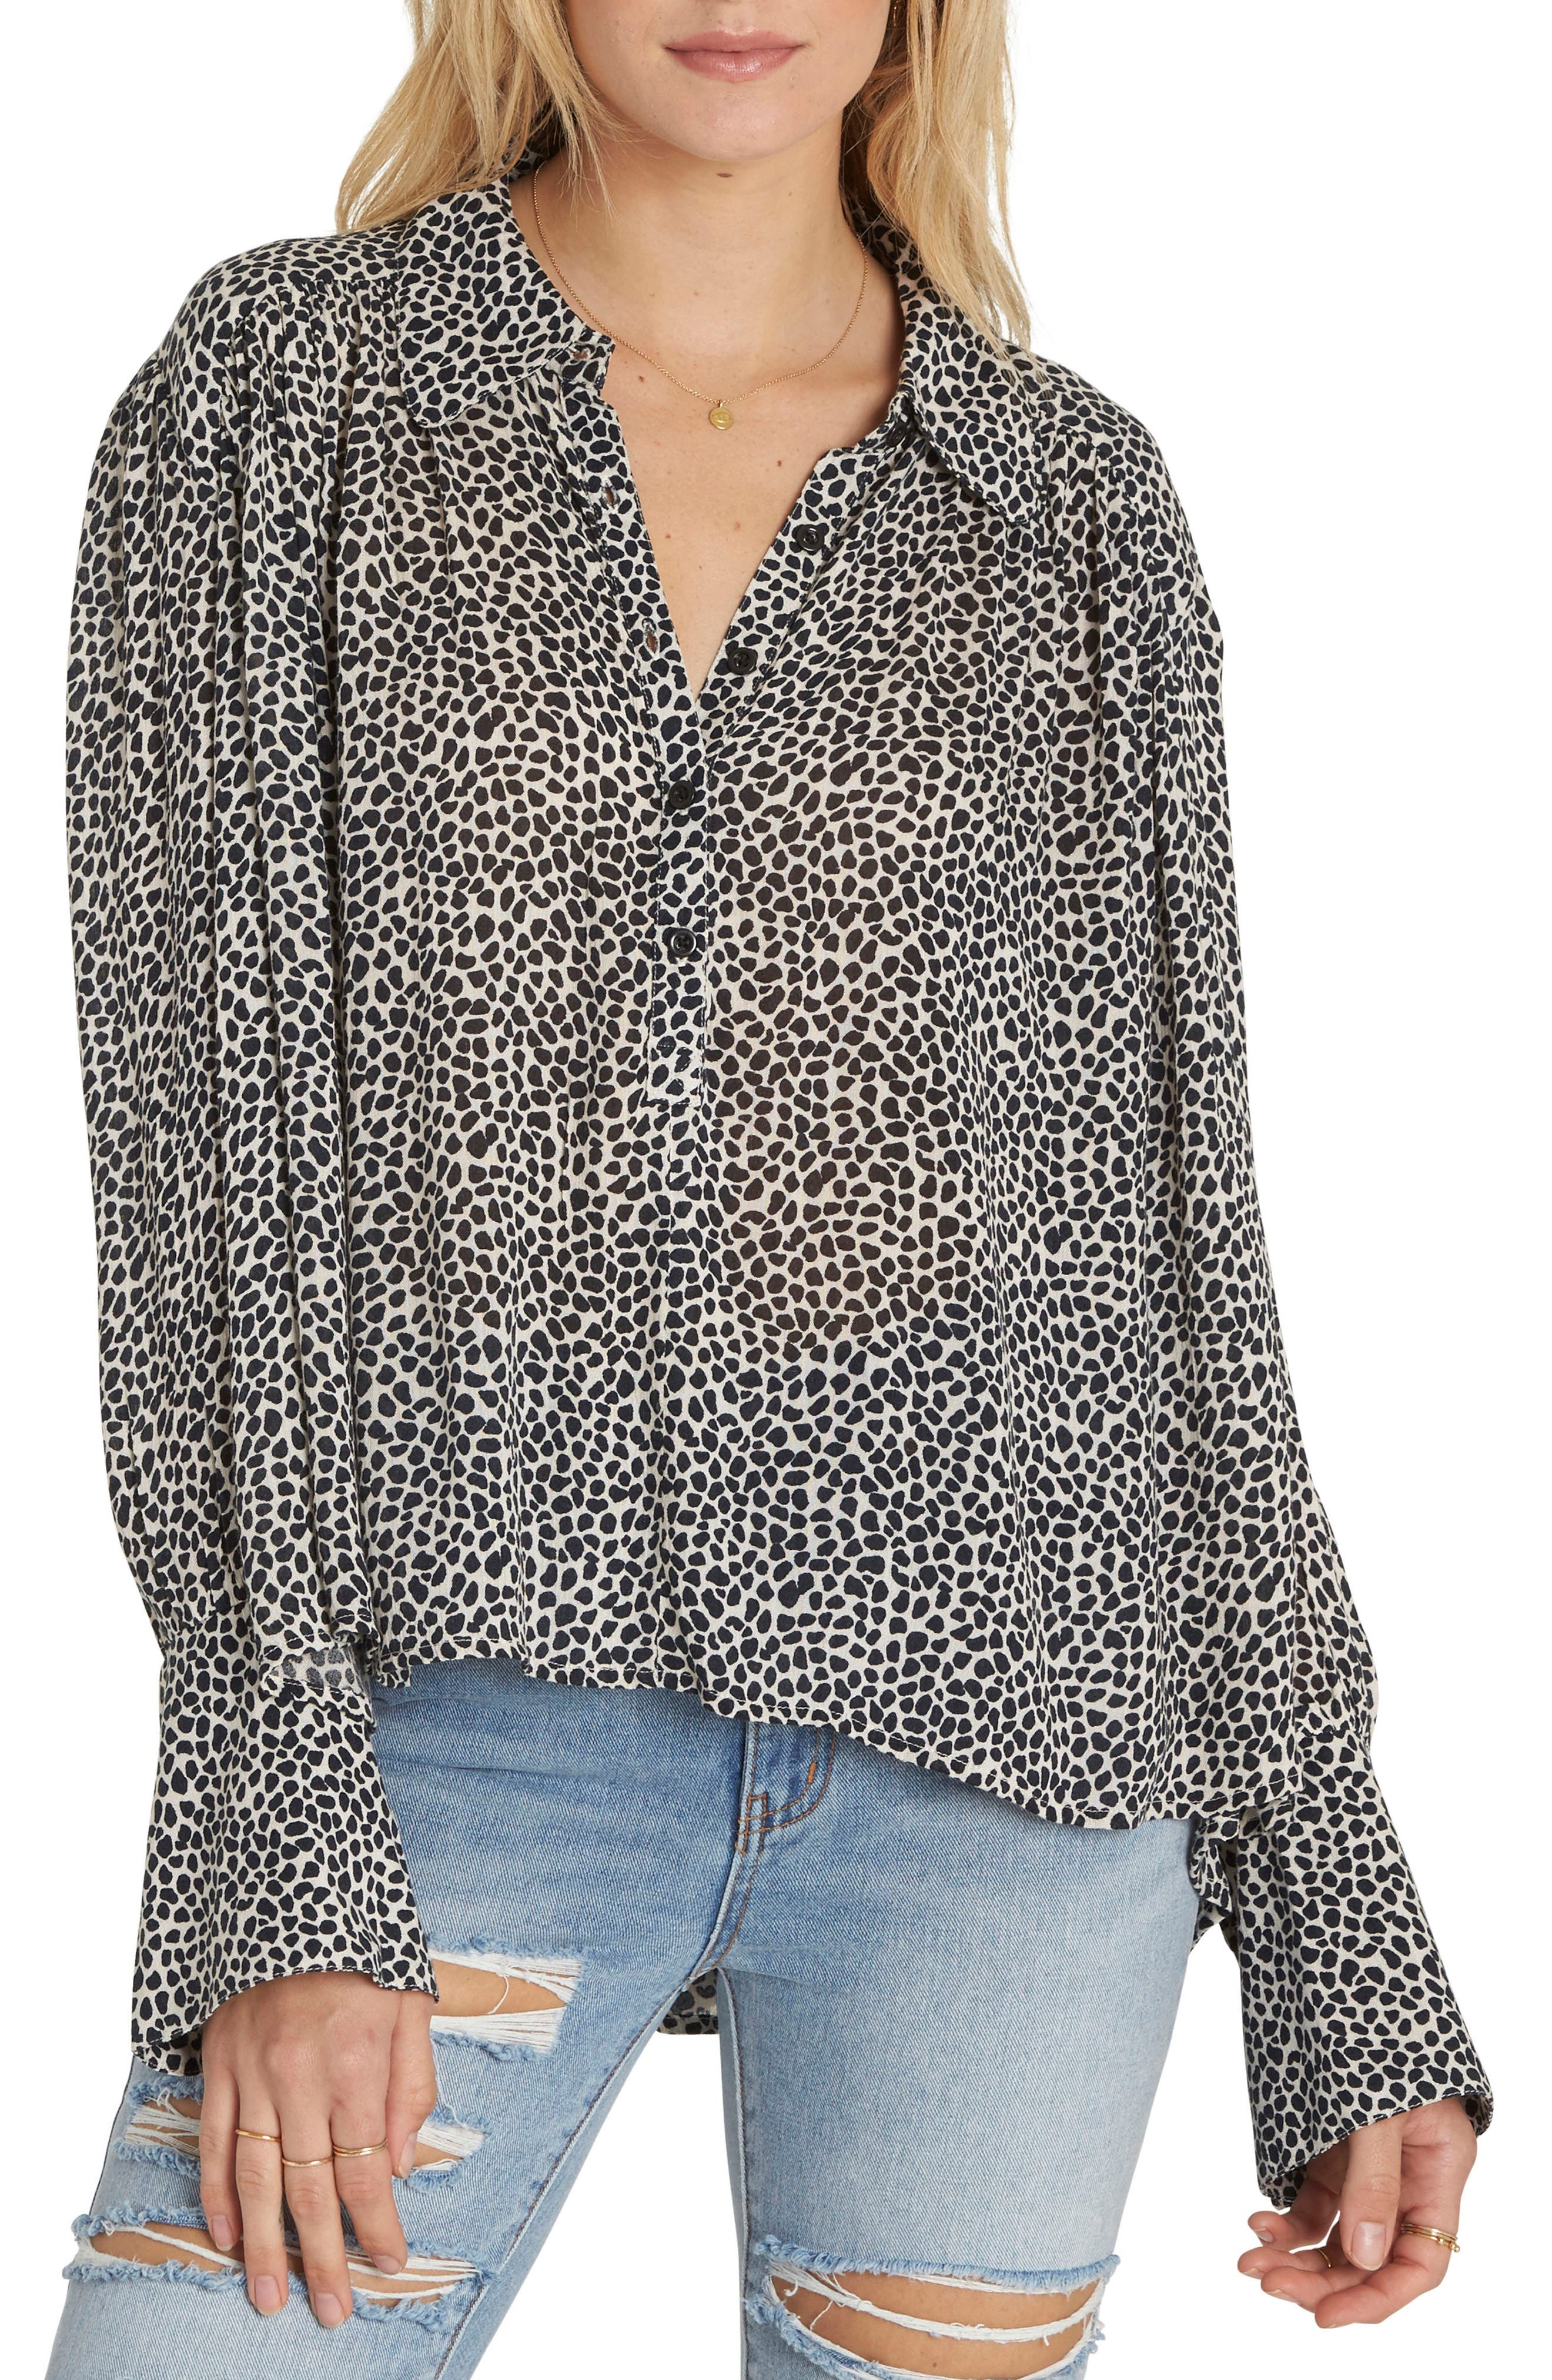 Main Image - Billabong Groovy Moves Flare Cuff Top